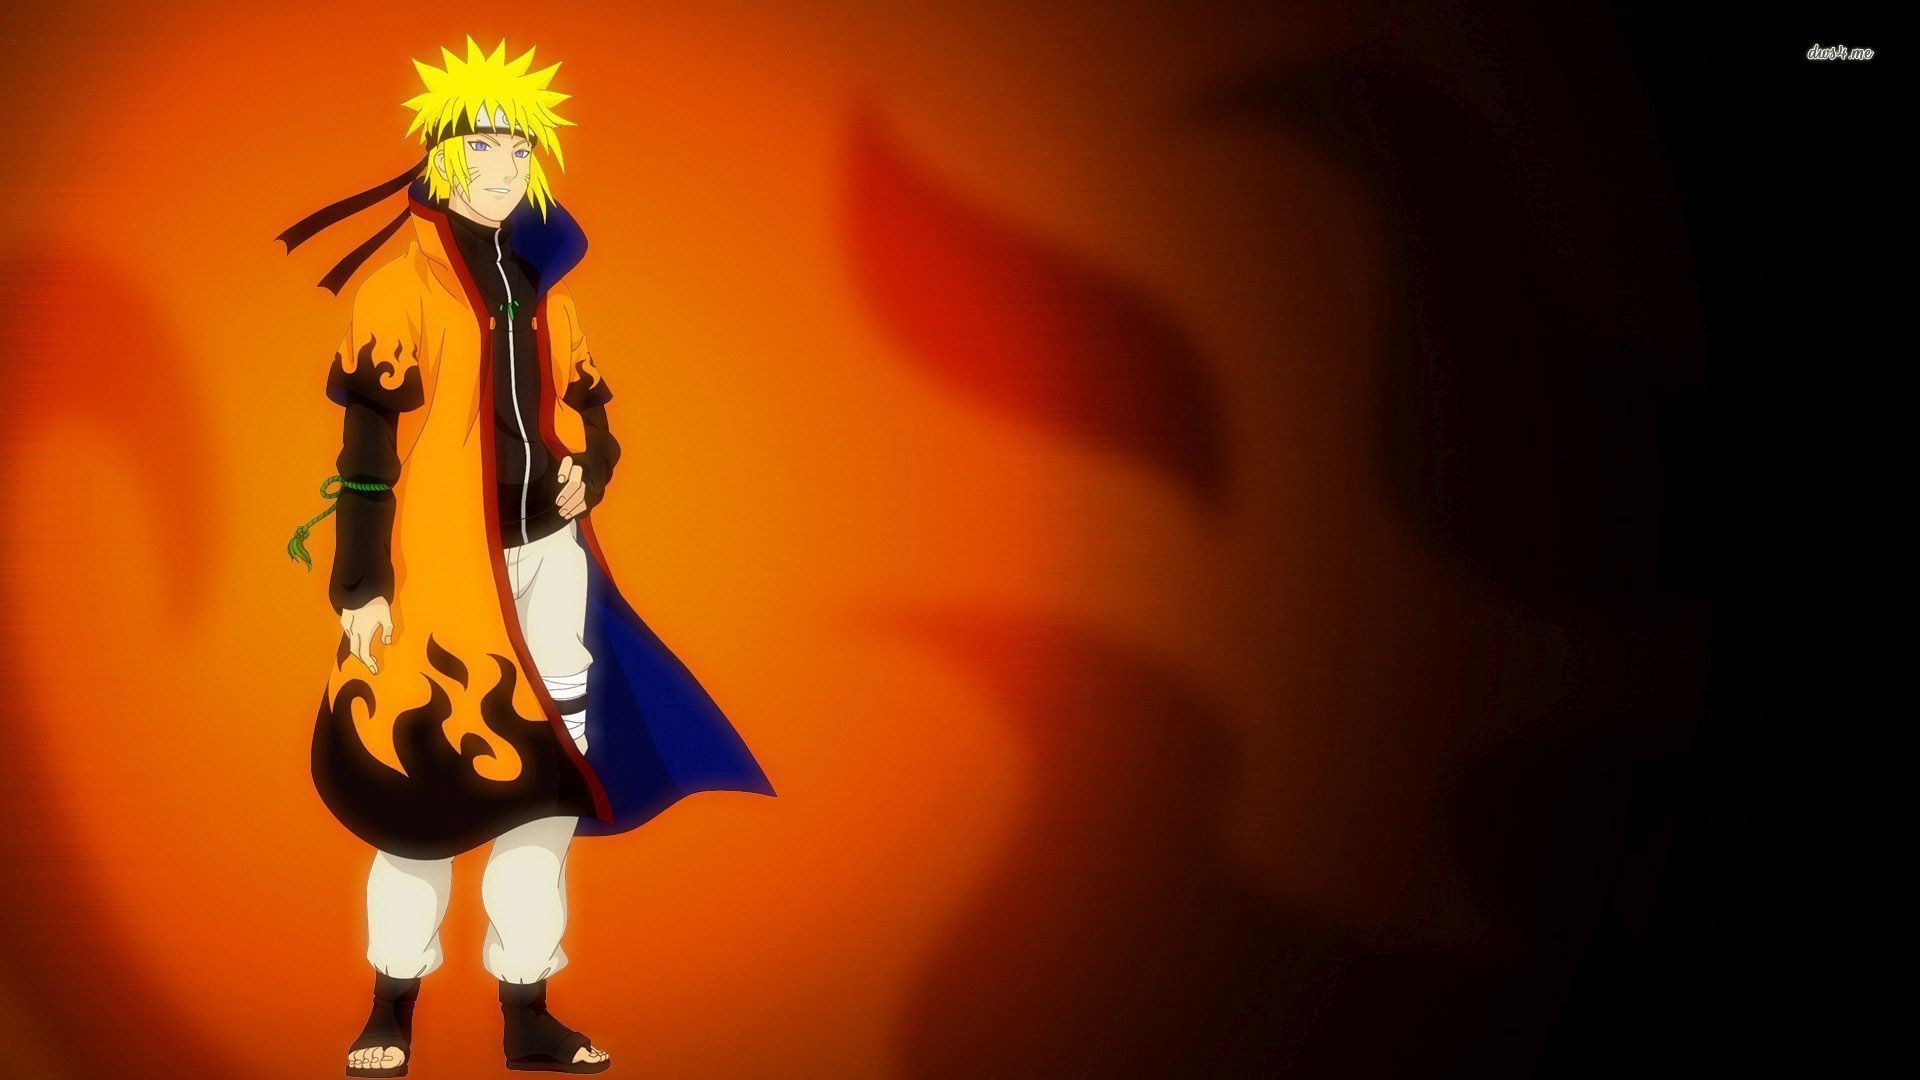 Supreme Naruto Wallpaper Posted By John Anderson